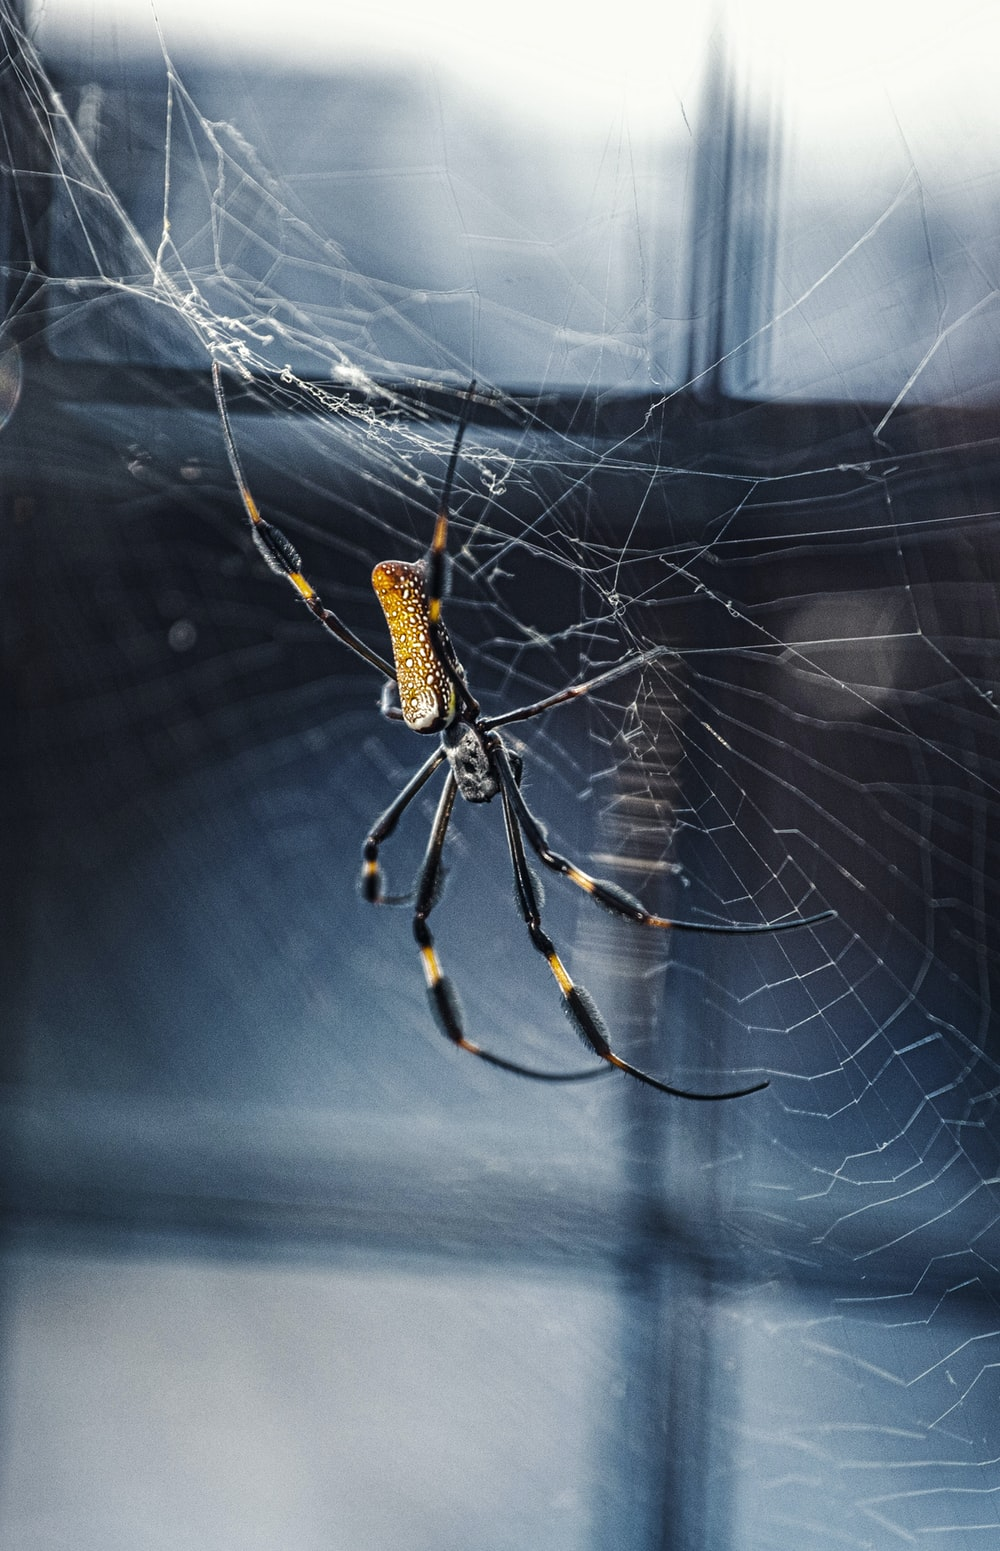 shallow focus photo of black and brown spider